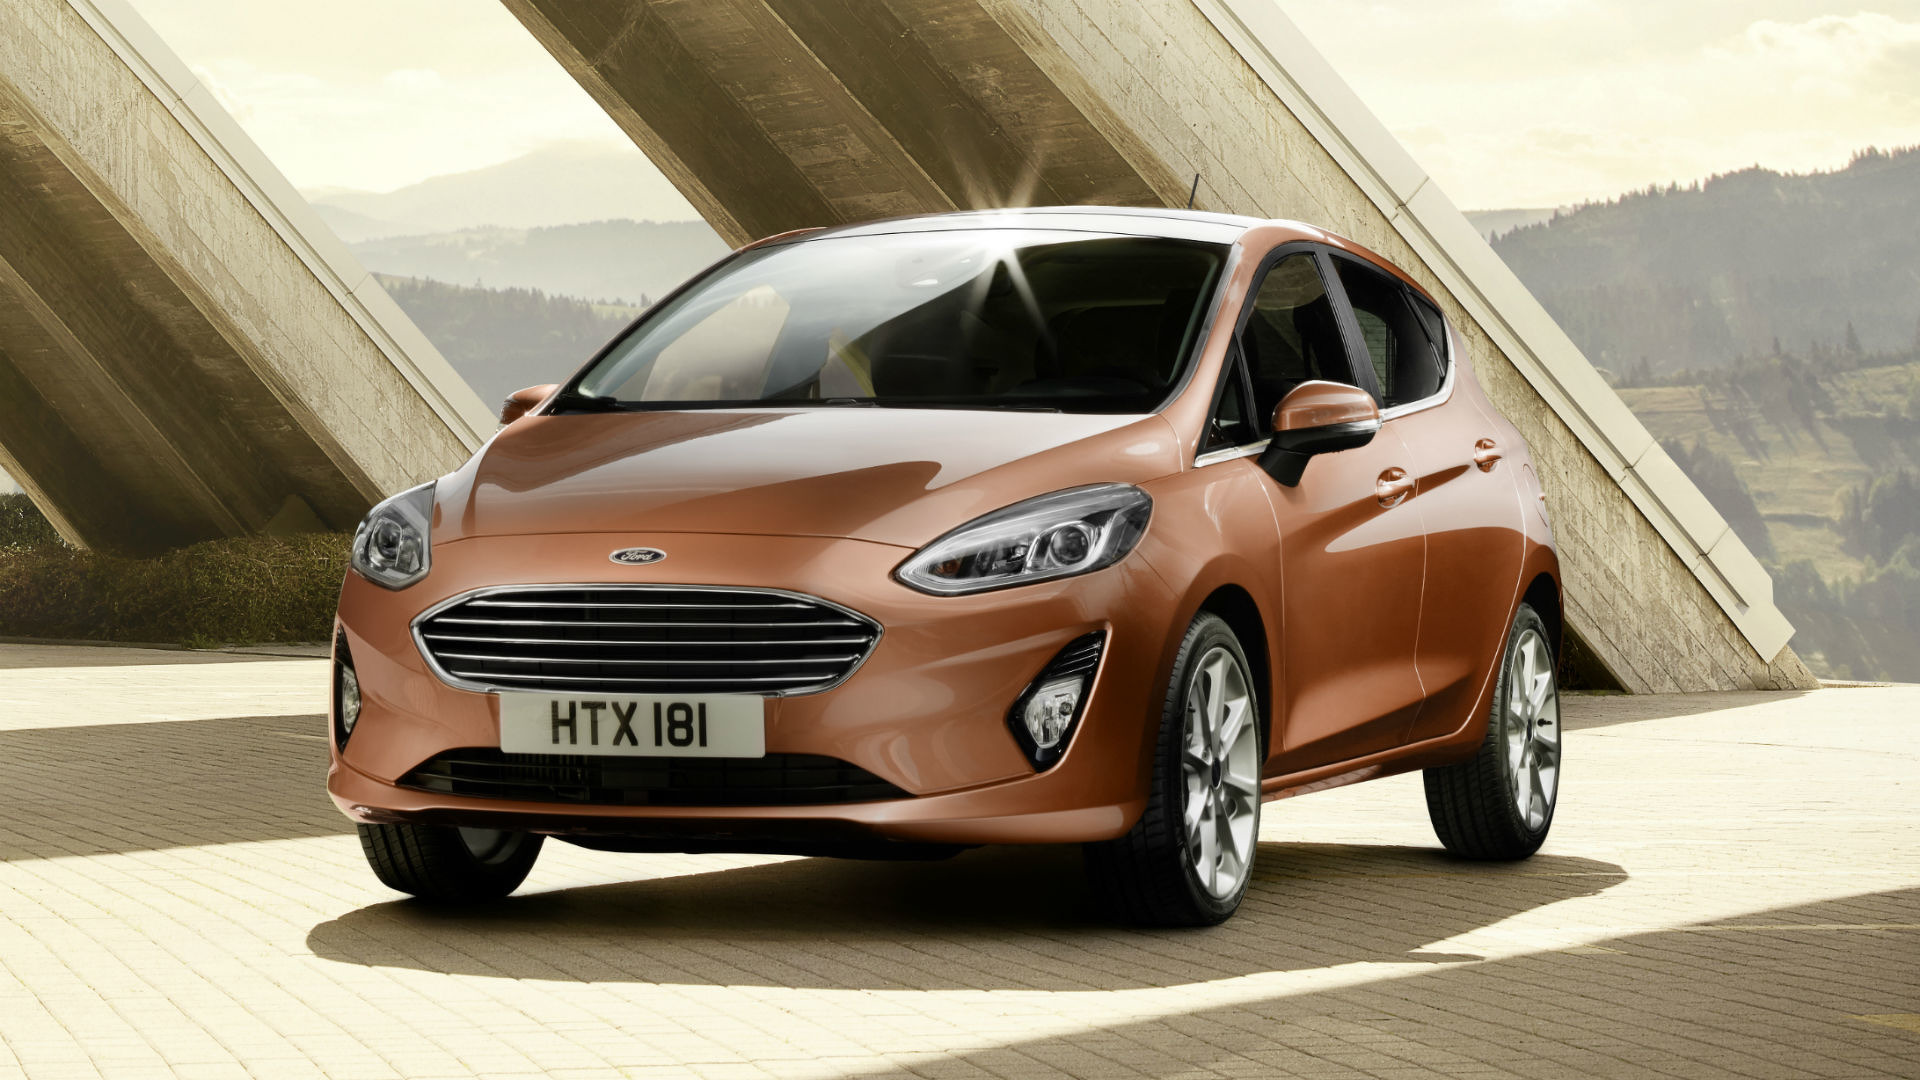 Ford Fiesta 2017 Specs More Details And Specs On 2017 Ford Fiesta Released